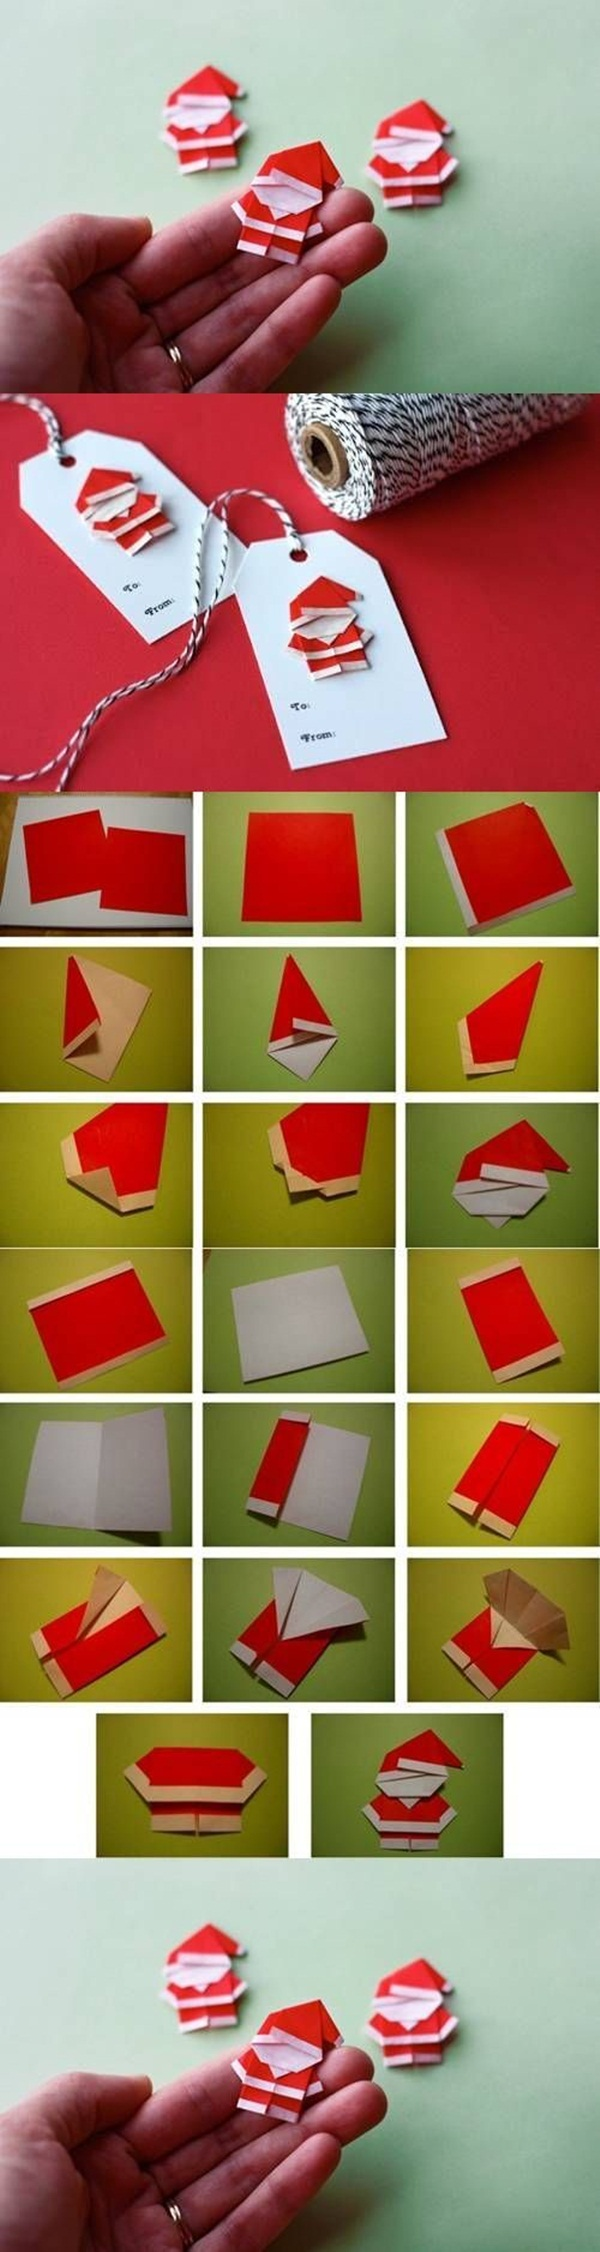 Paper Craft Ideas4